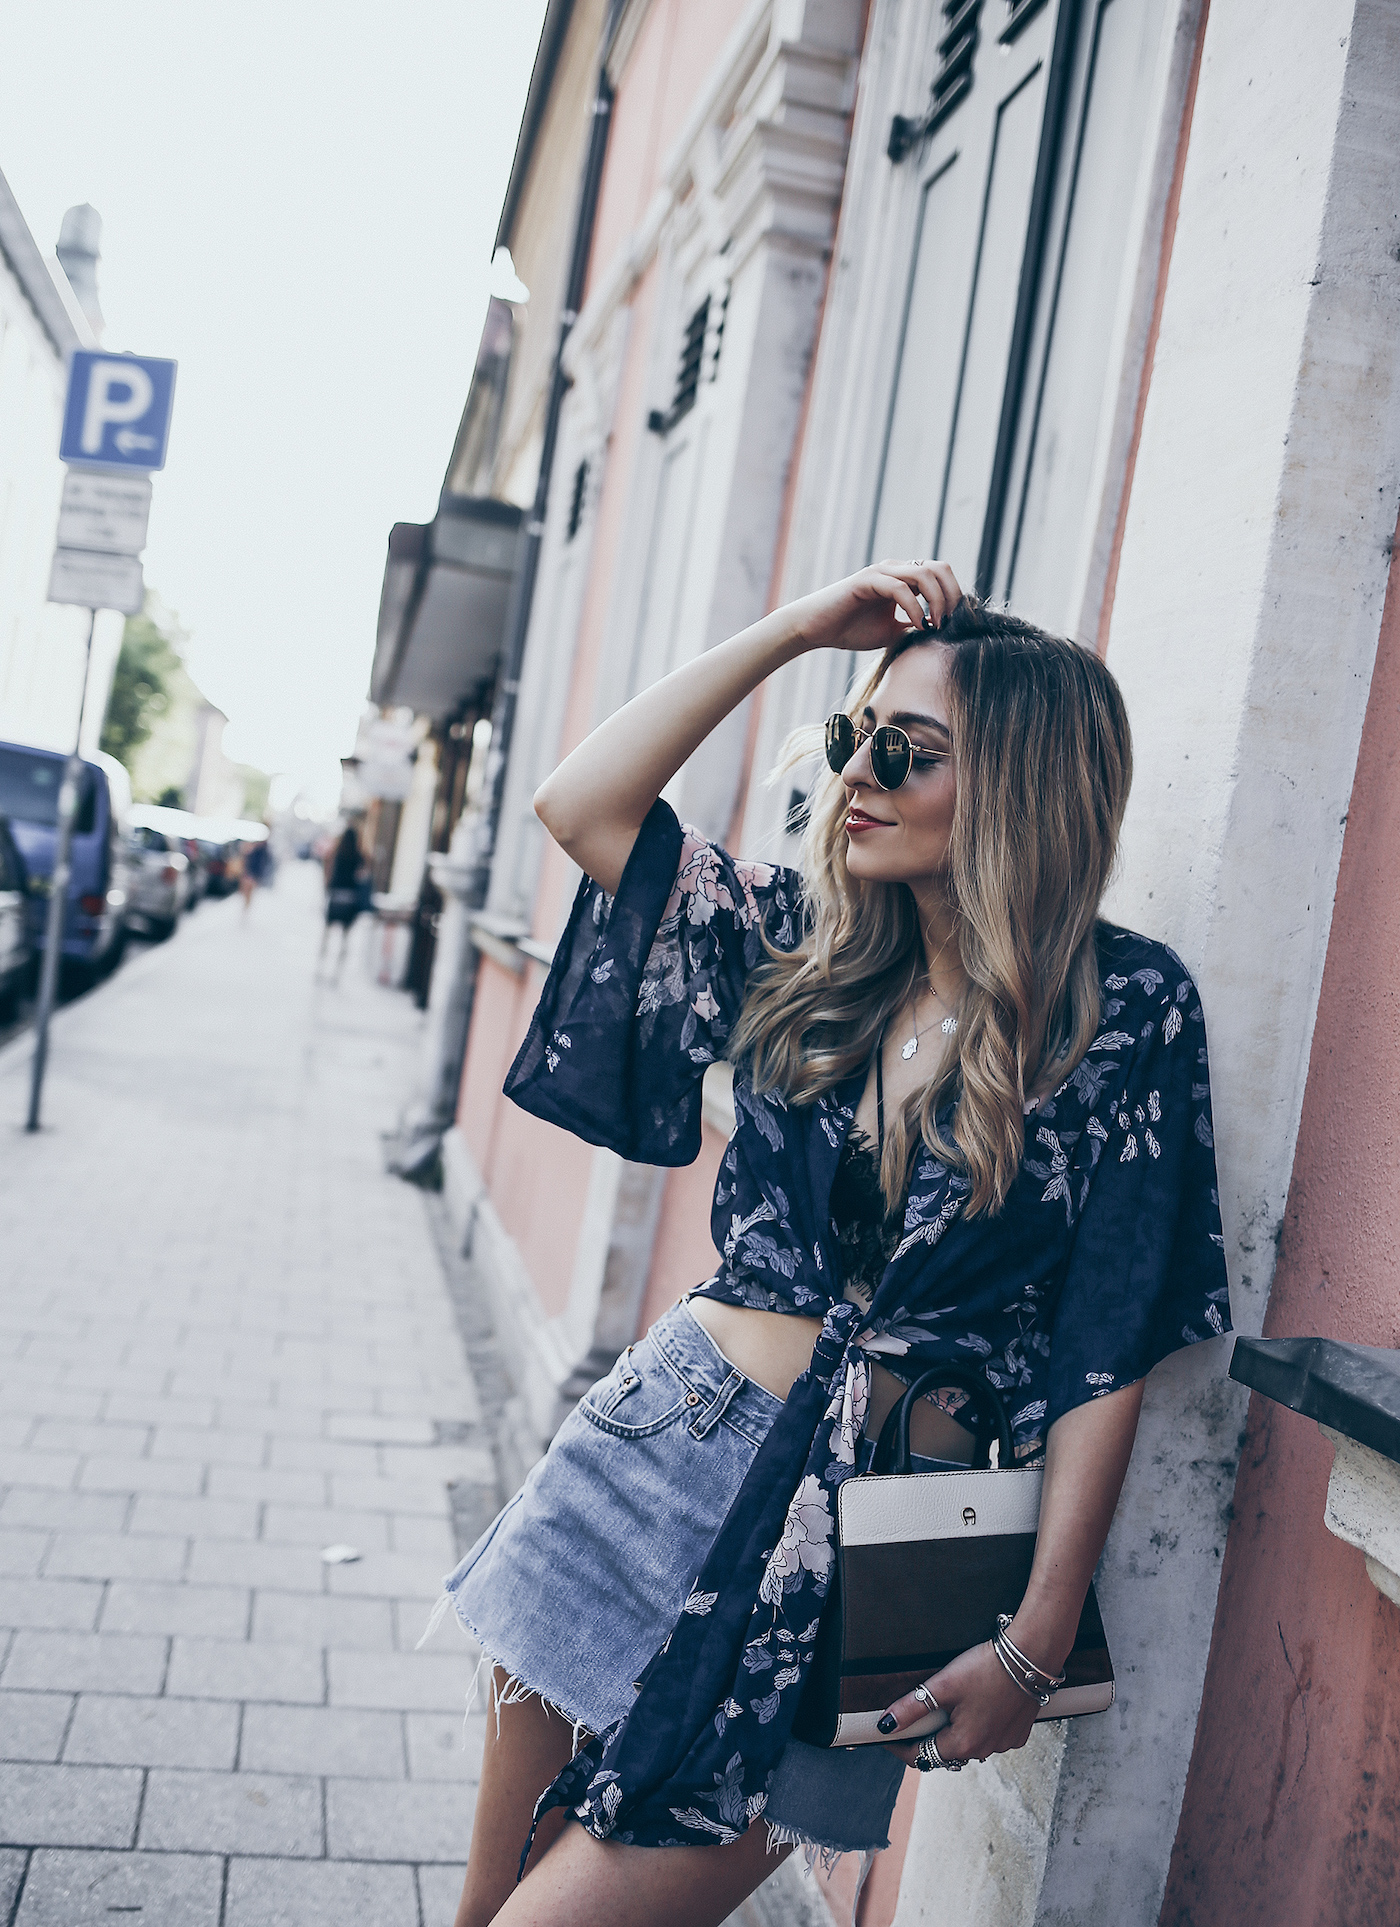 Non Technical Fashion Blog Photography Tips | Want Get Repeat Fashion Blog Mode Blog Nürnberg Erlangen